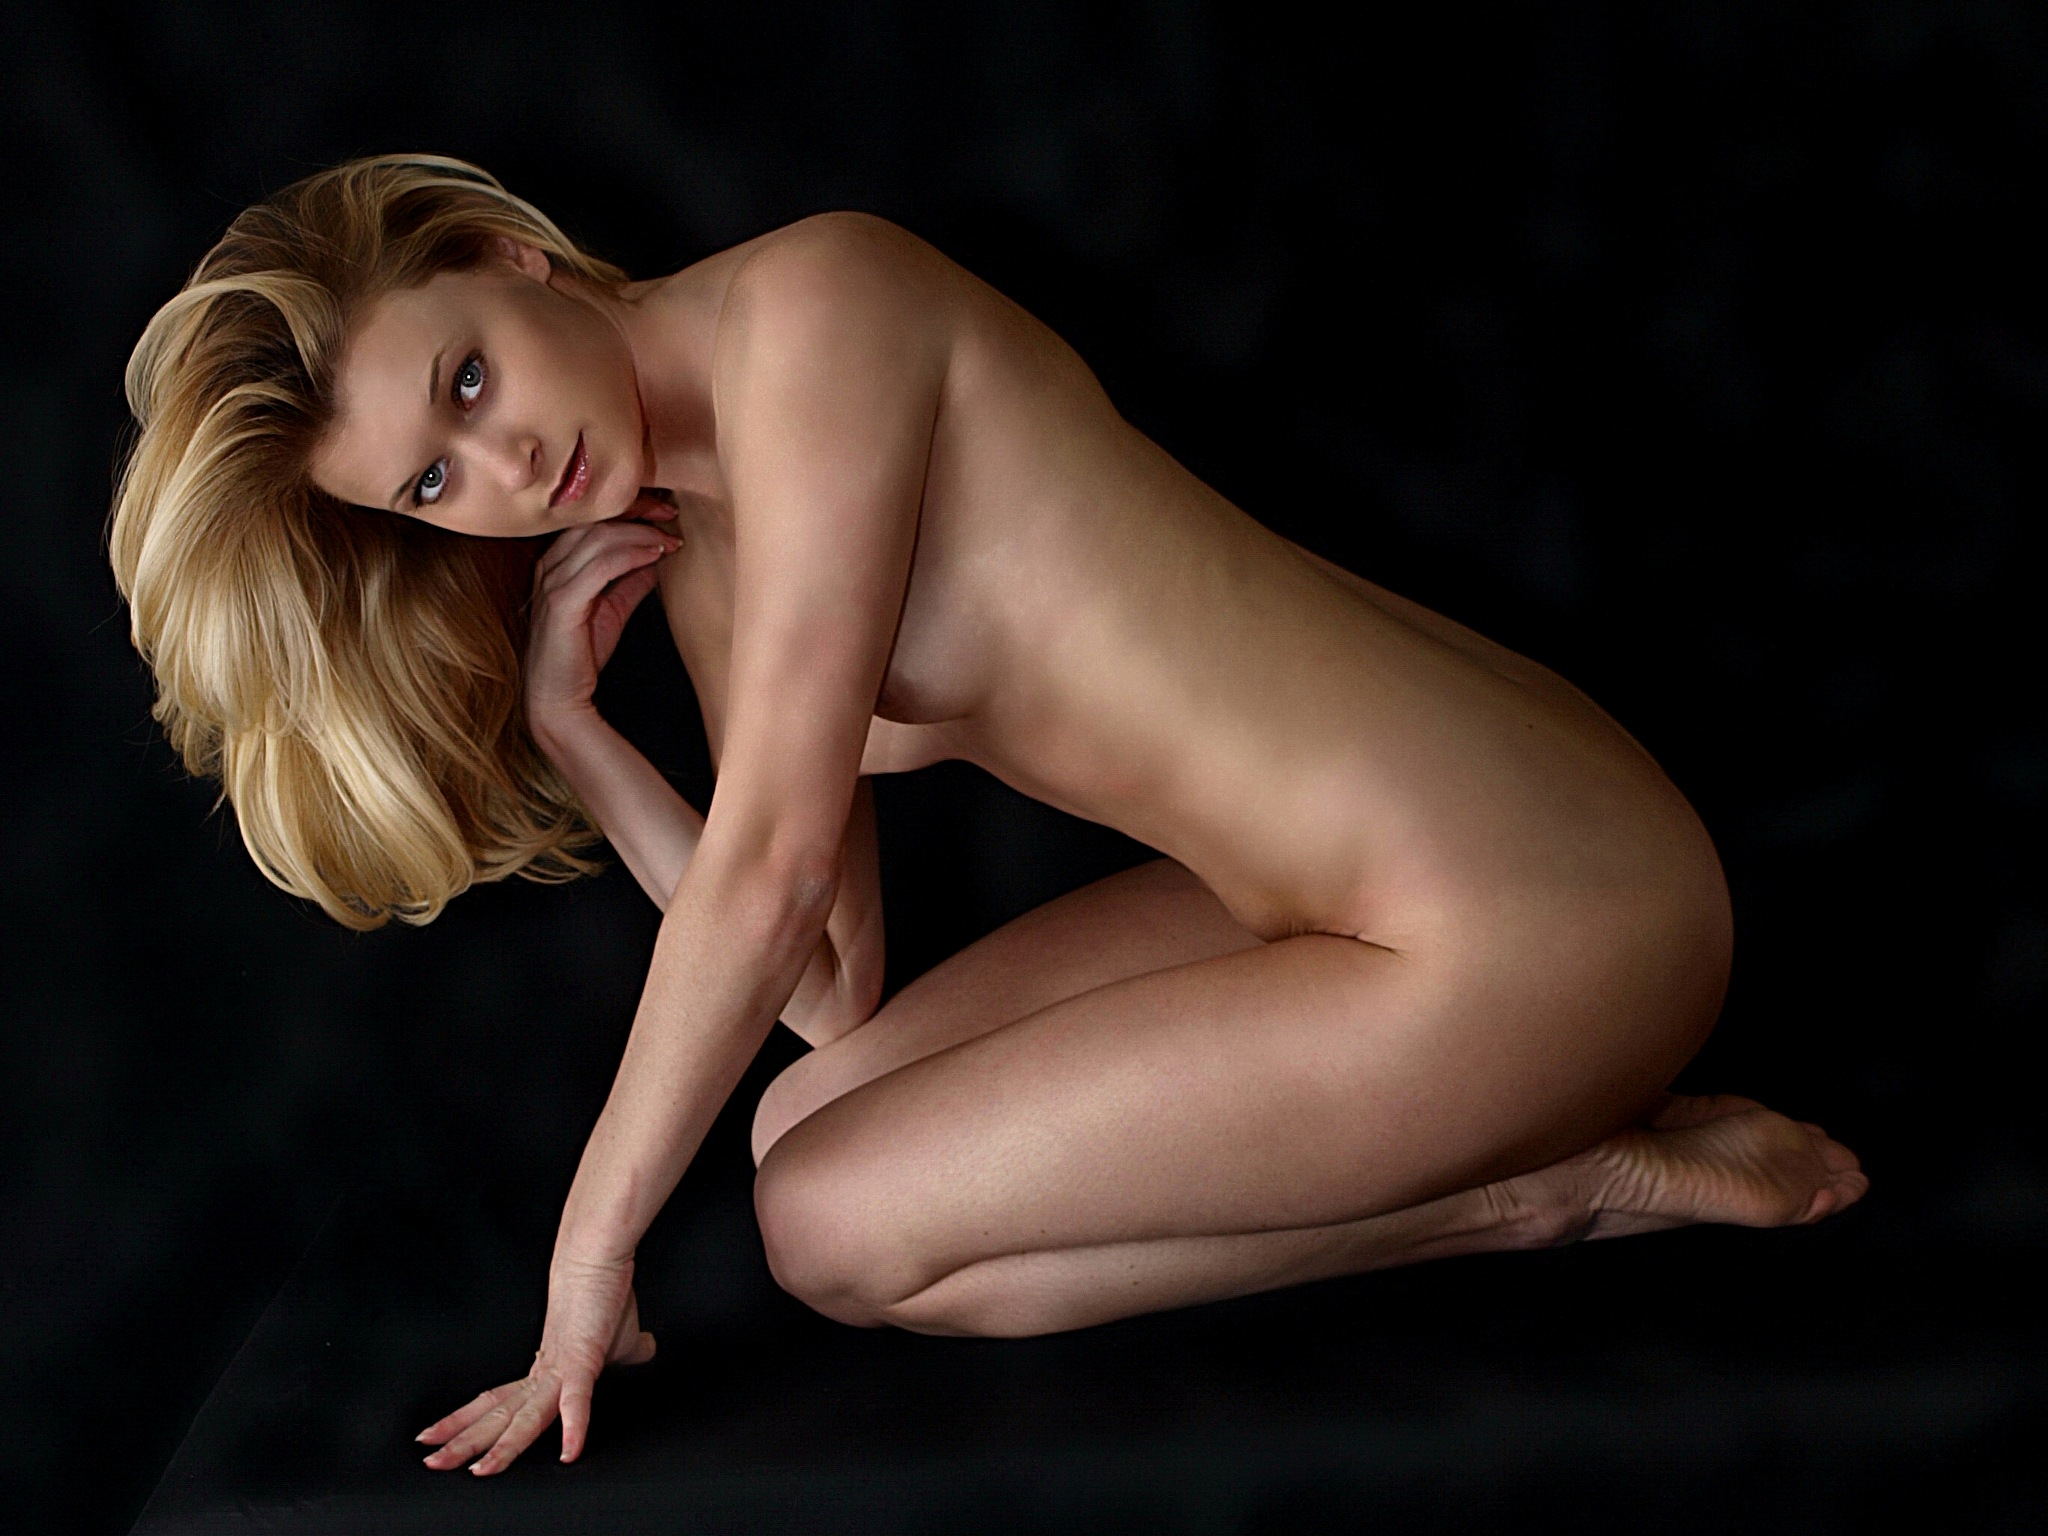 Mandy 3066 by swhiteimages